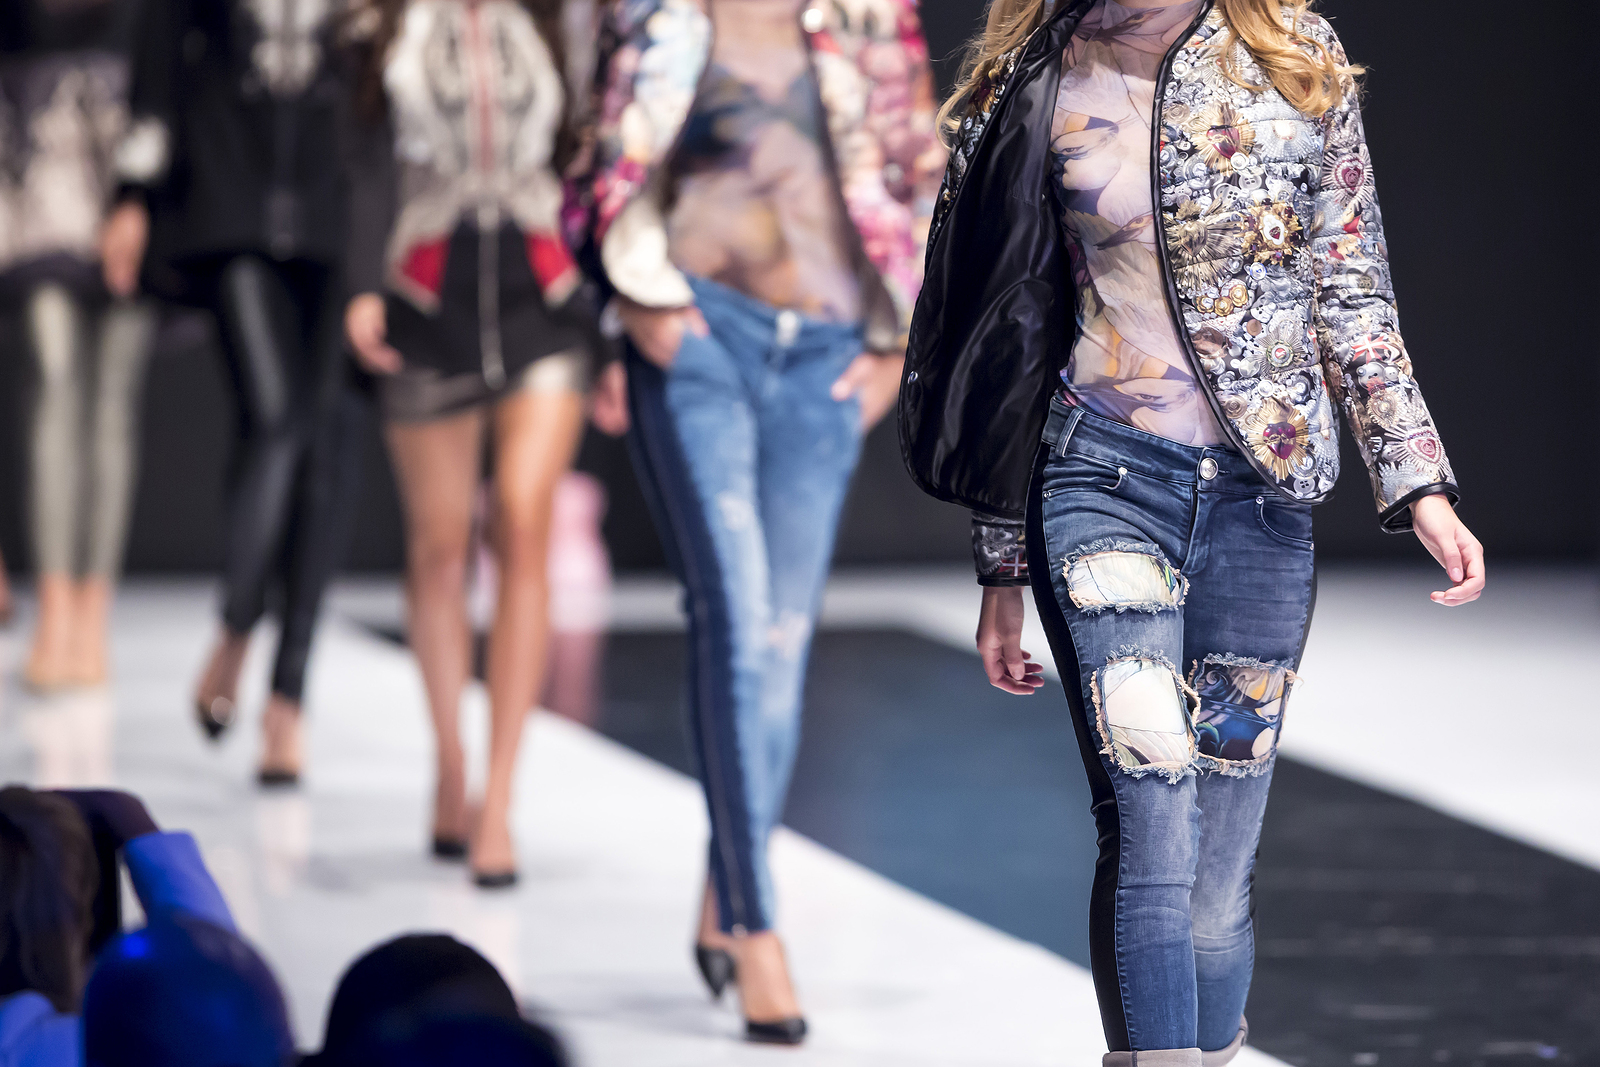 LED Panels Light Up Paris Catwalk